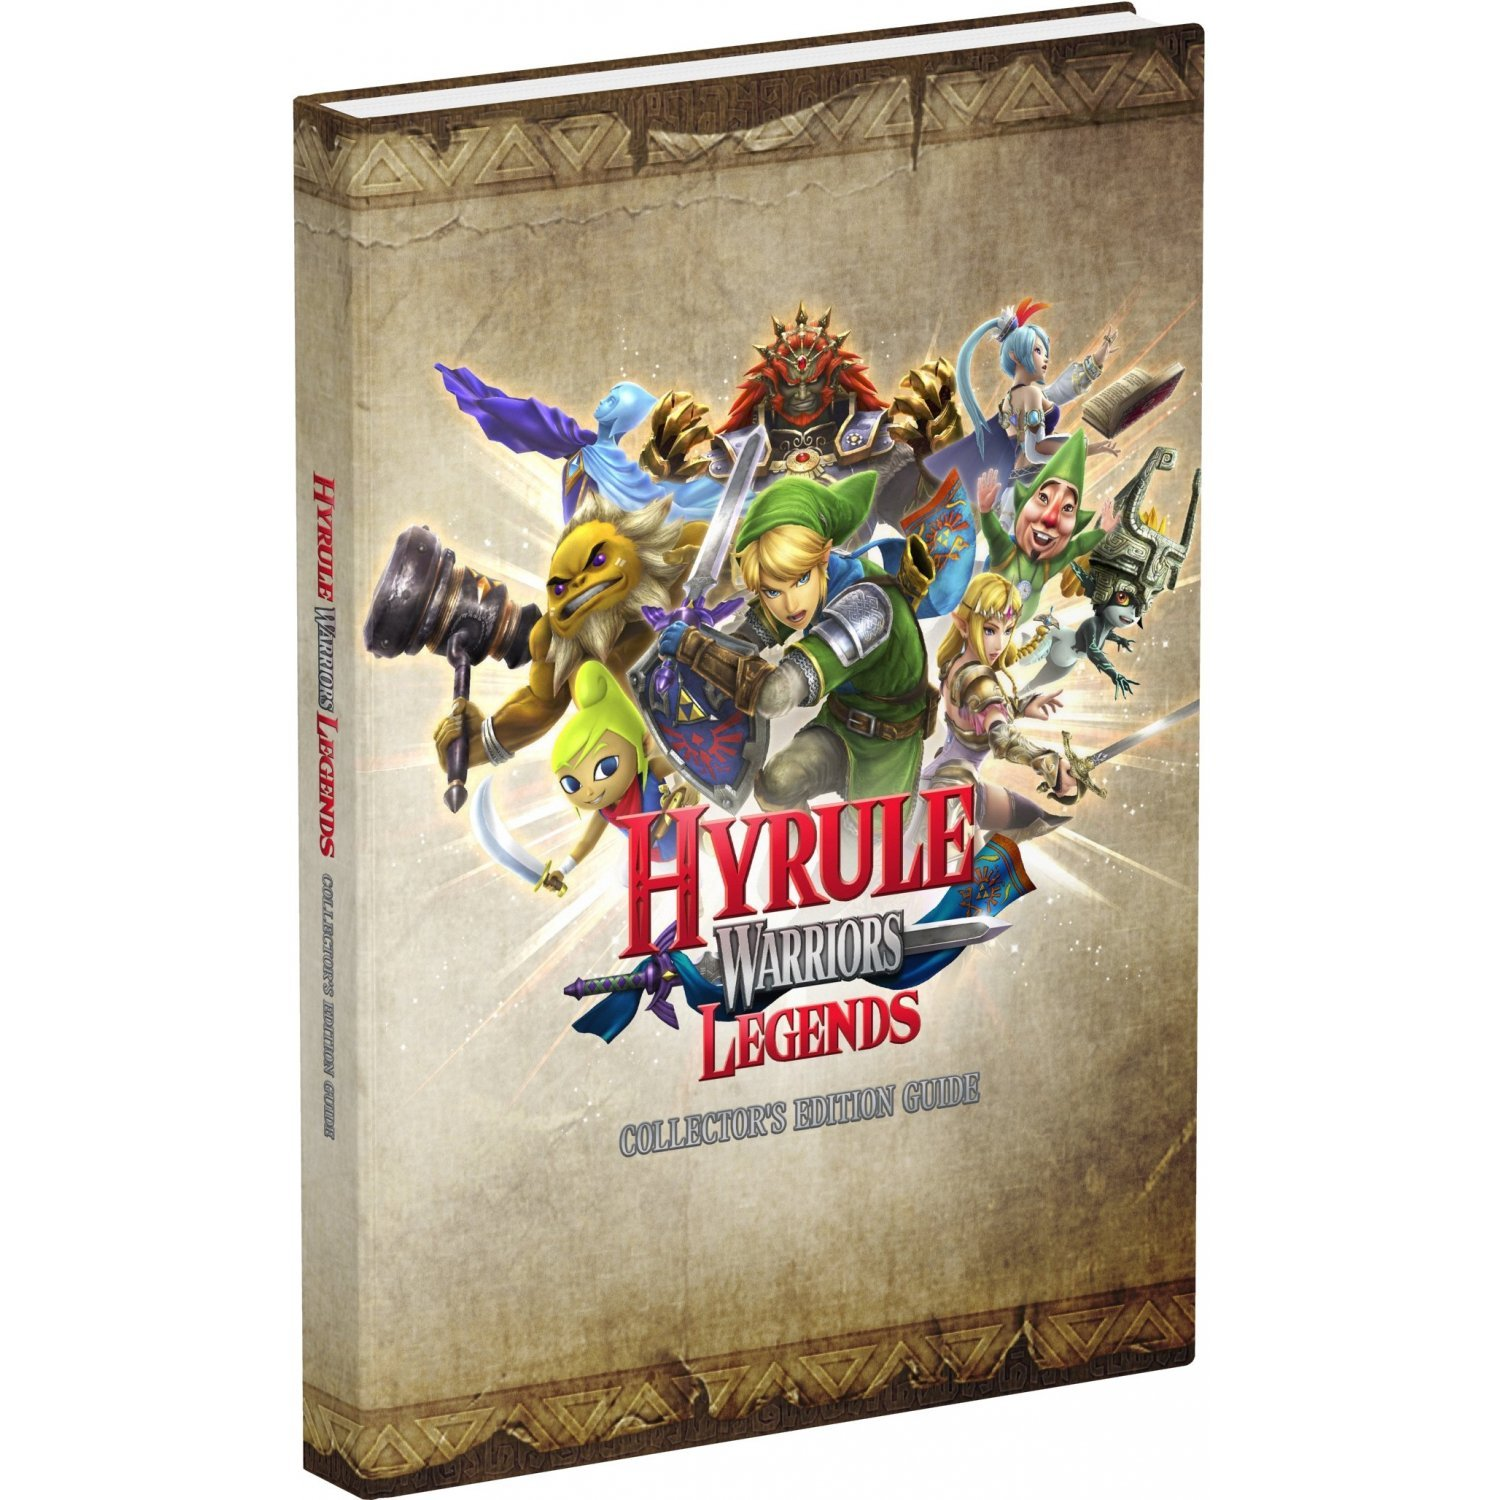 Warriors Book Series Games: Hyrule Warriors Legends Collector's Edition Official